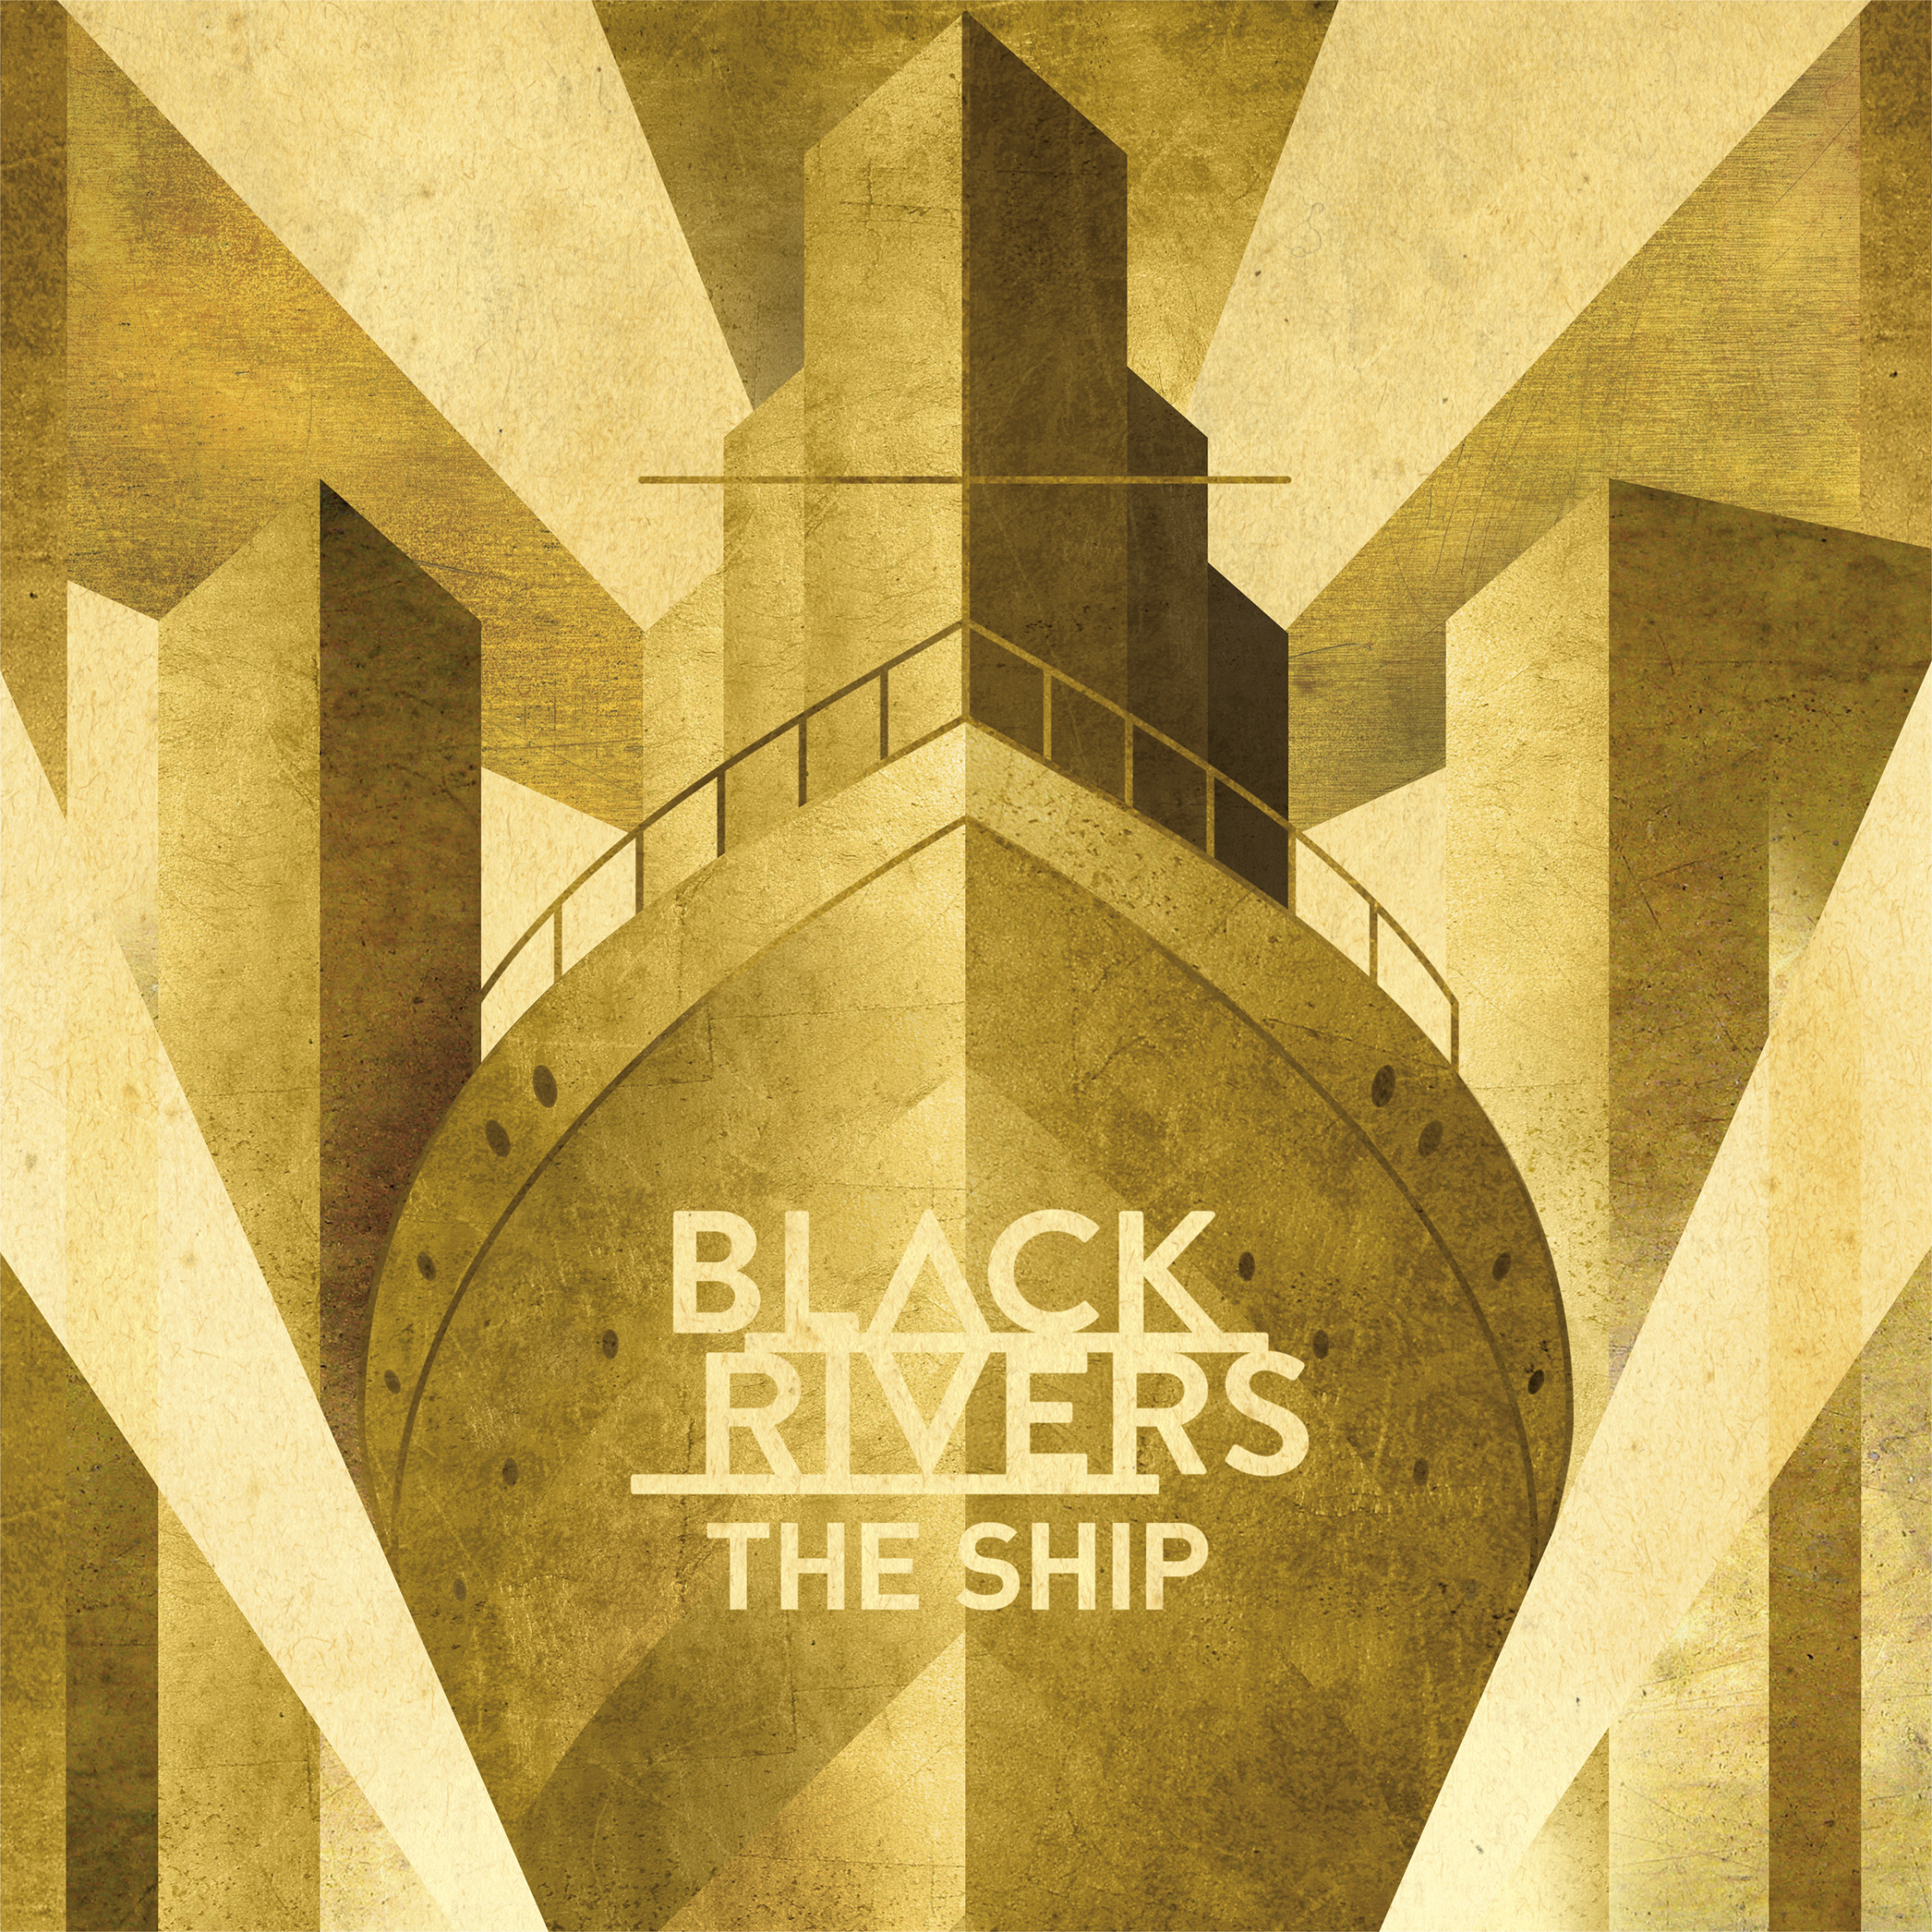 The Ship / Black Rivers